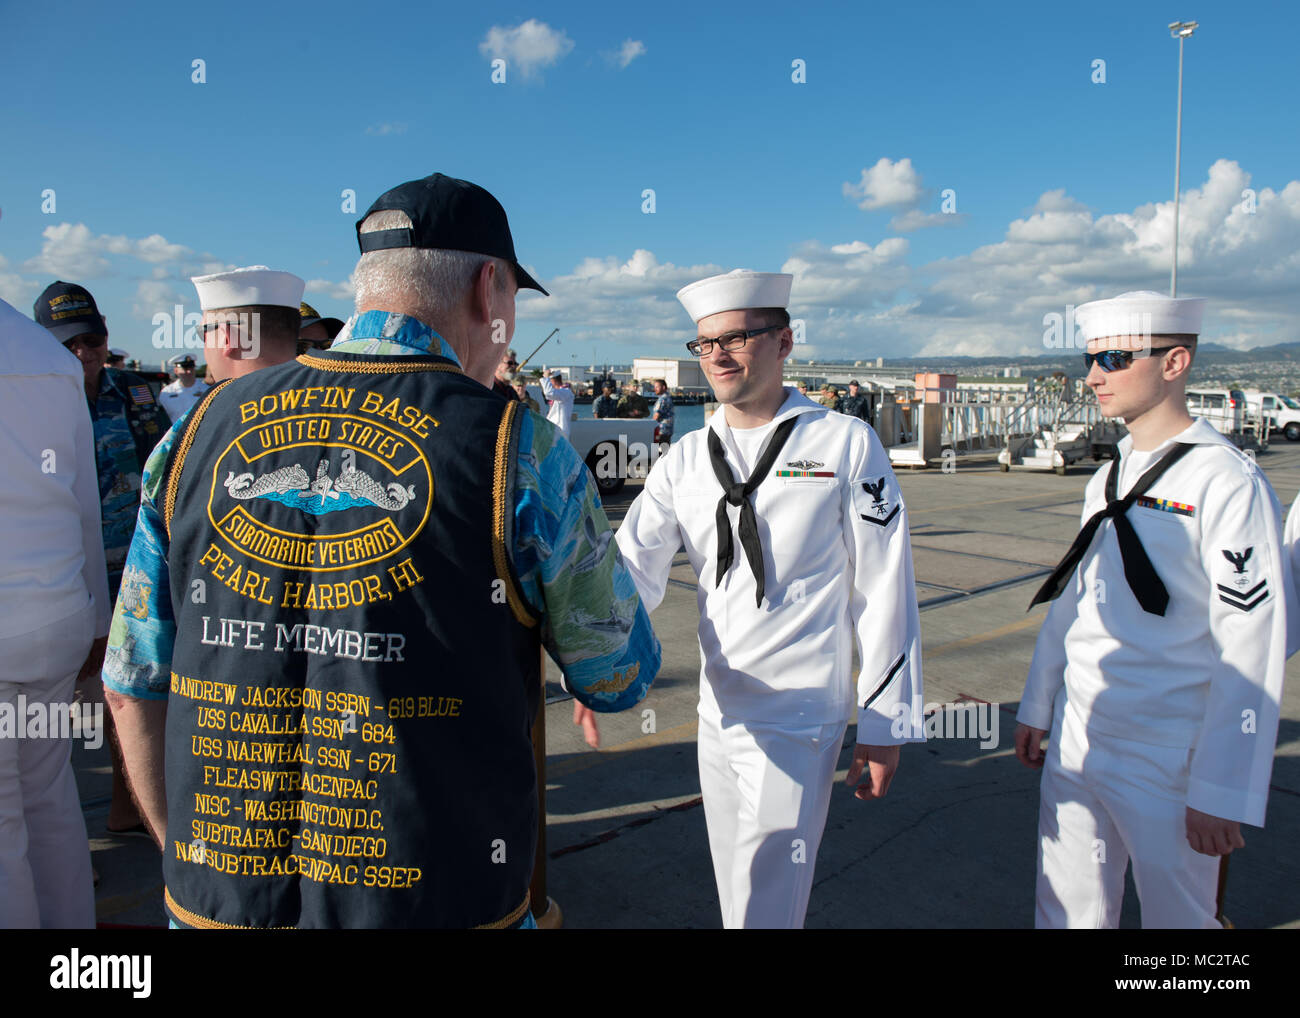 Uss Bowfin Submarine In Pearl Stock Photos & Uss Bowfin Submarine In ...